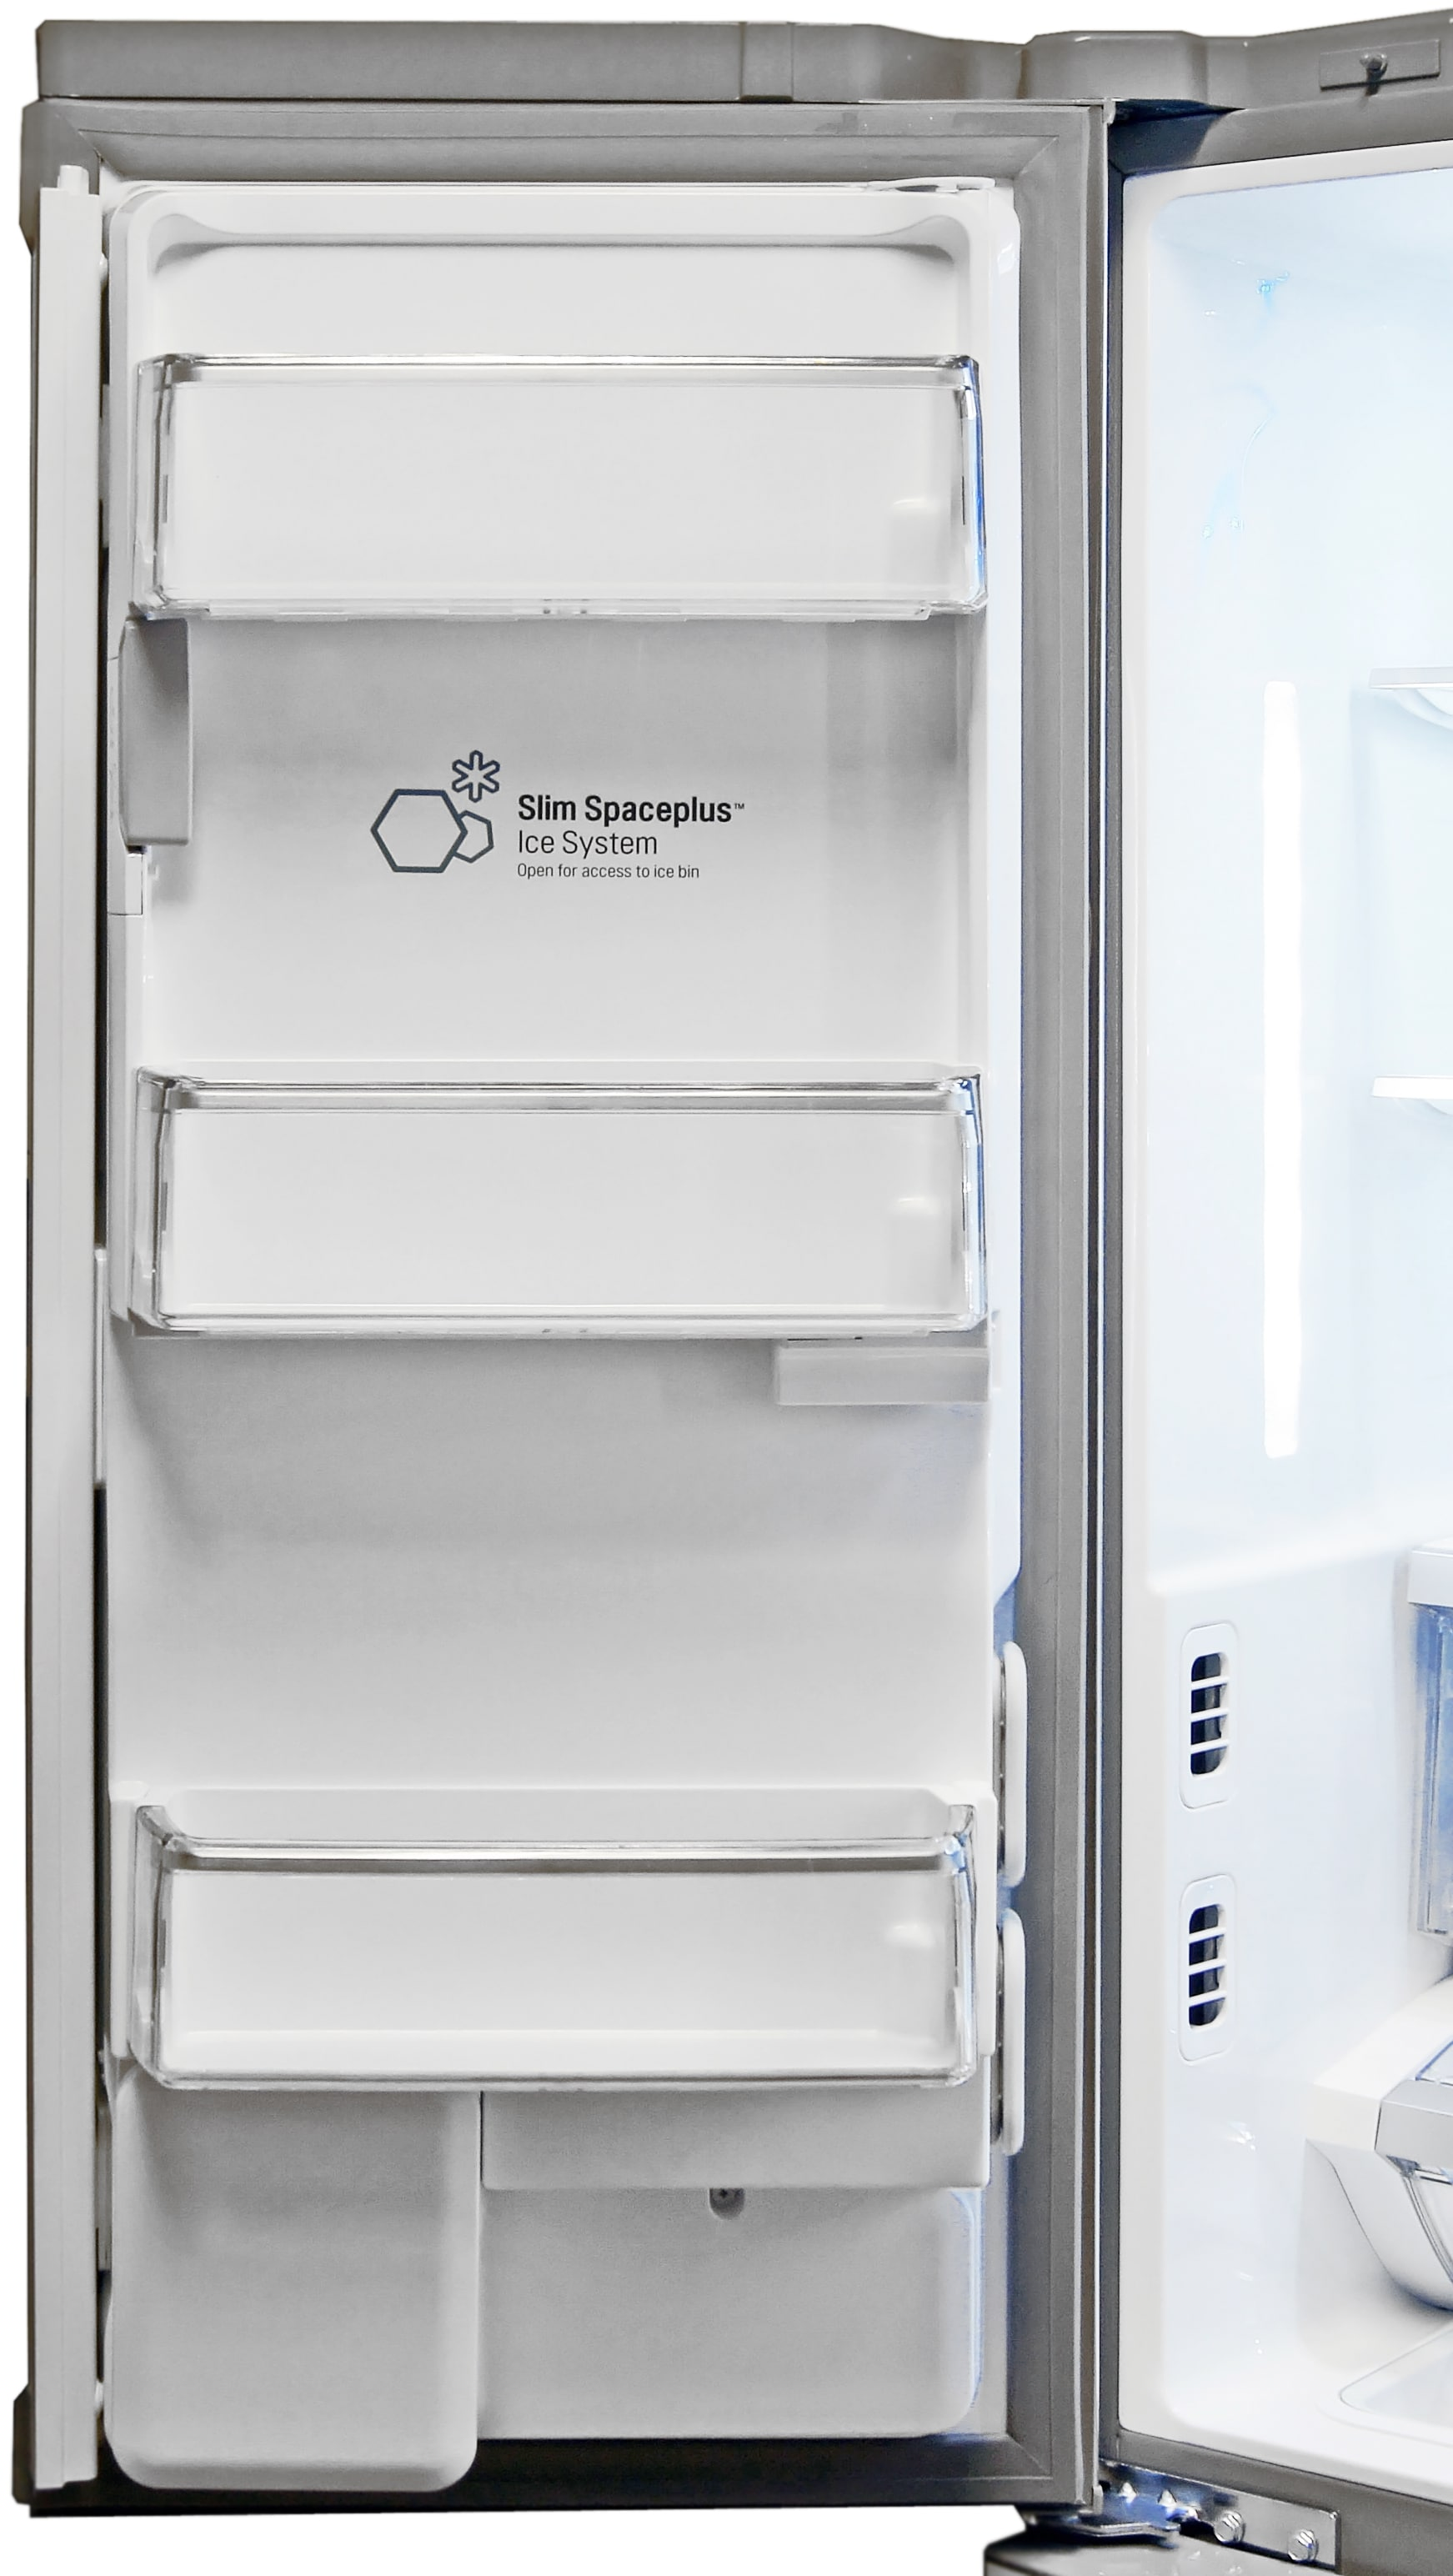 Even with the LG LFX32945ST's door-mounted icemaker, you still get three (rather shallow) shelves.